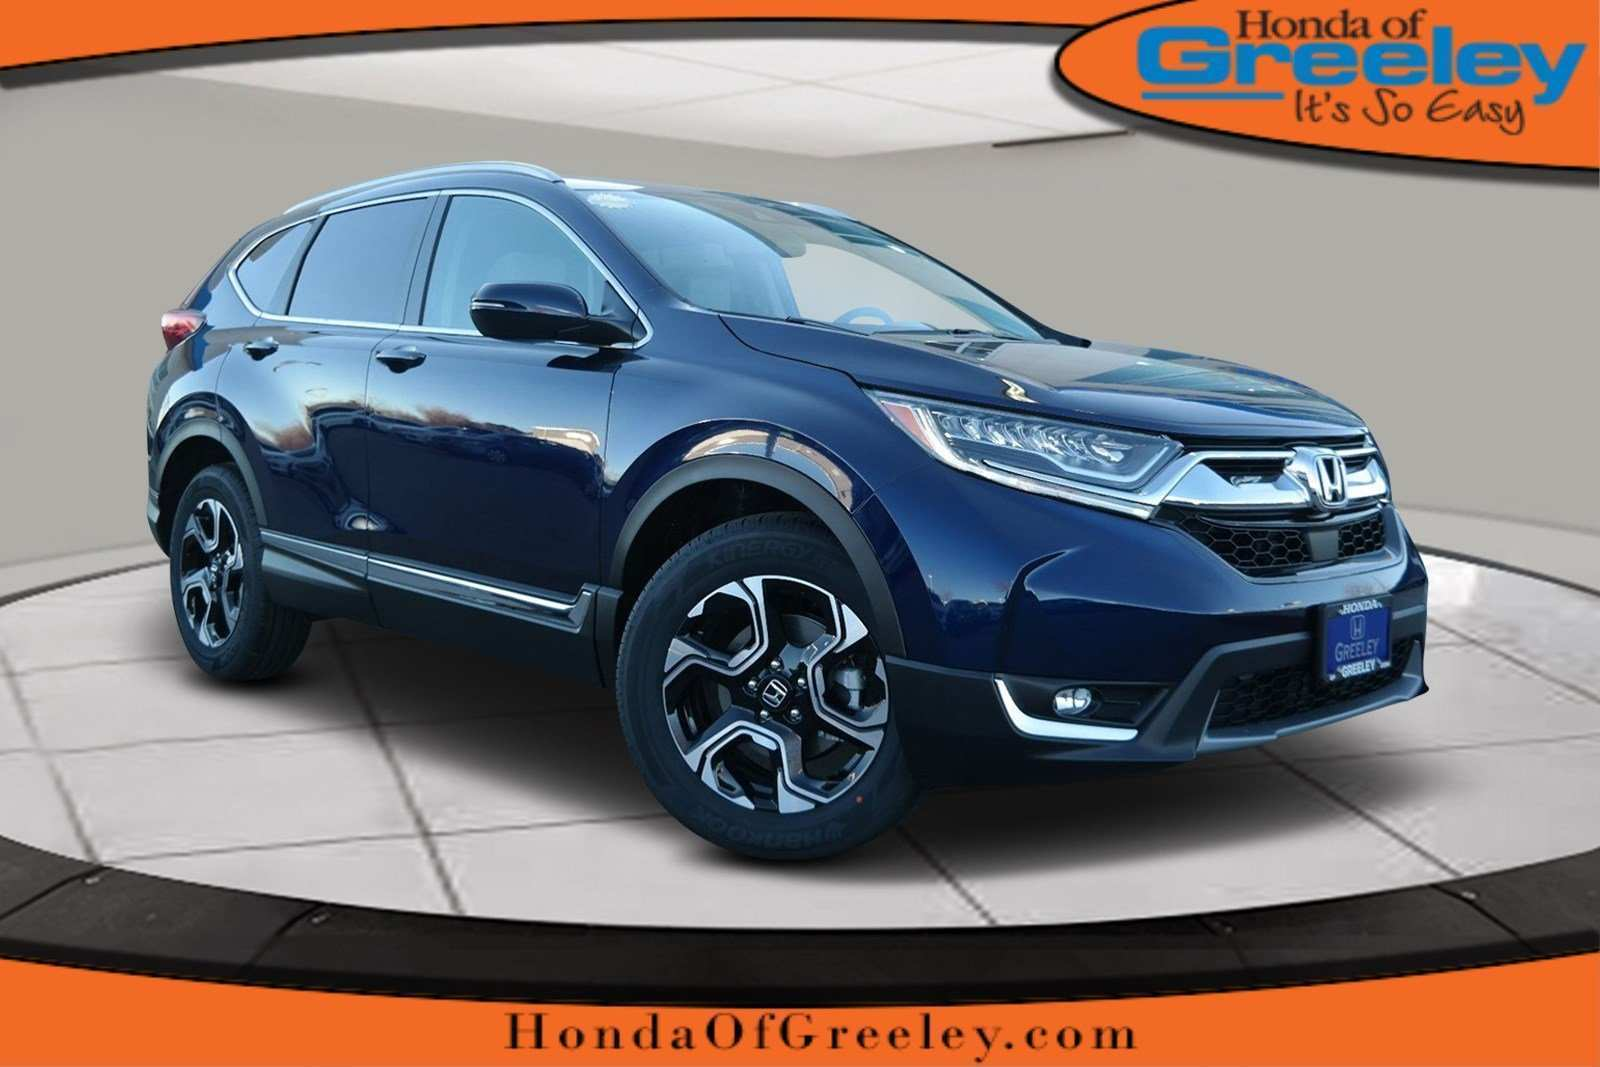 87 Concept of 2019 Honda Touring Crv Price by 2019 Honda Touring Crv